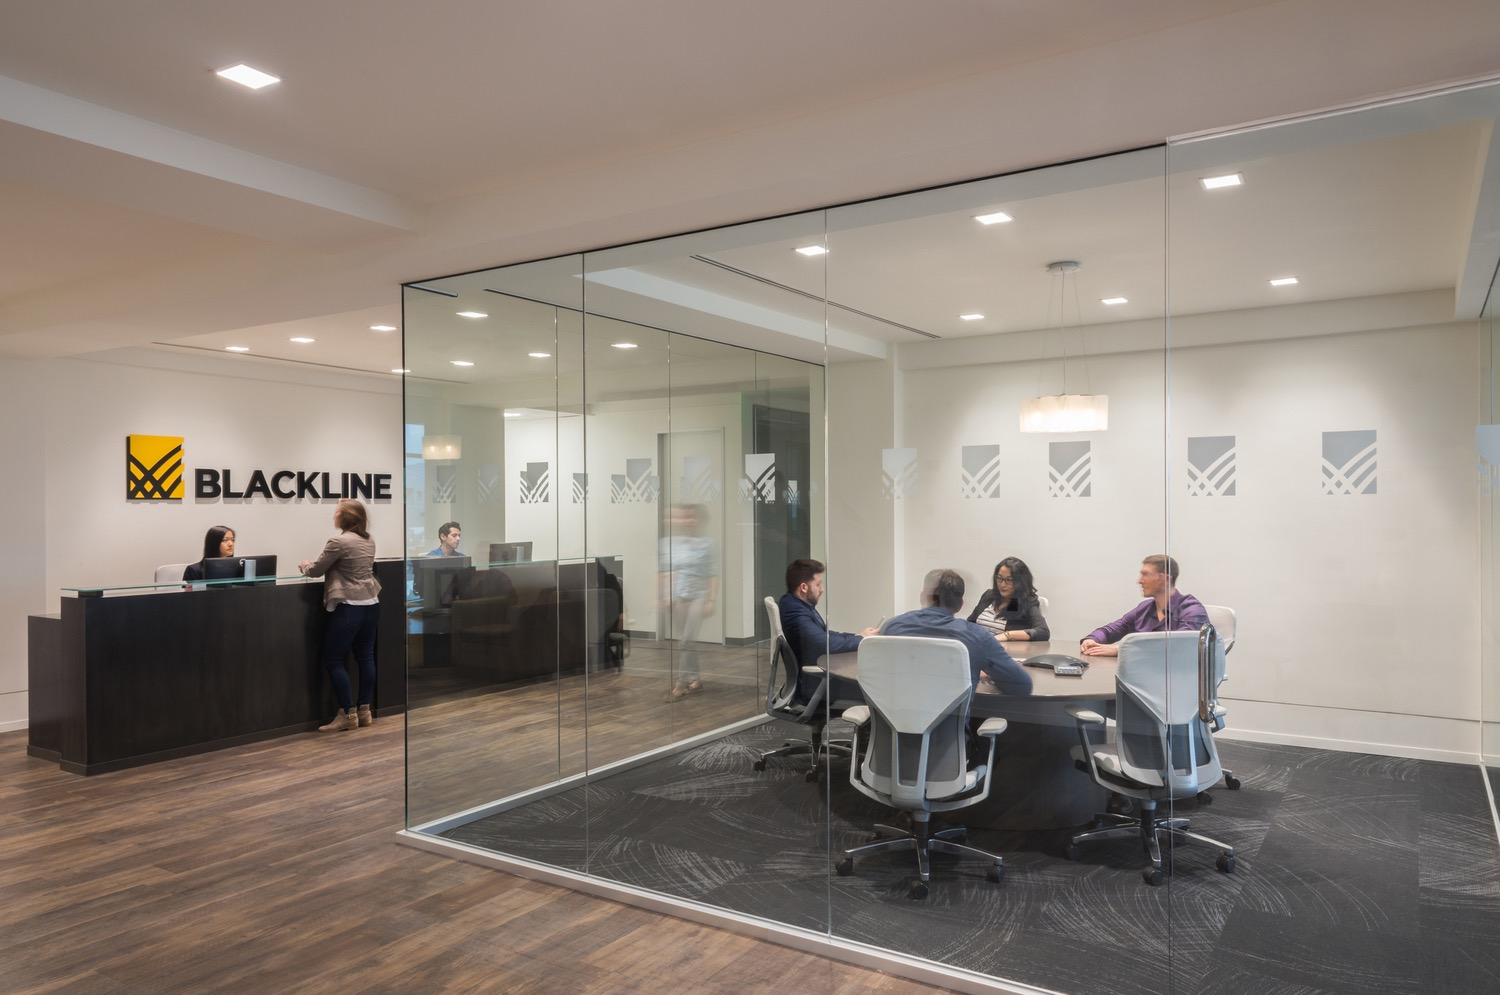 blackline-la-office-6